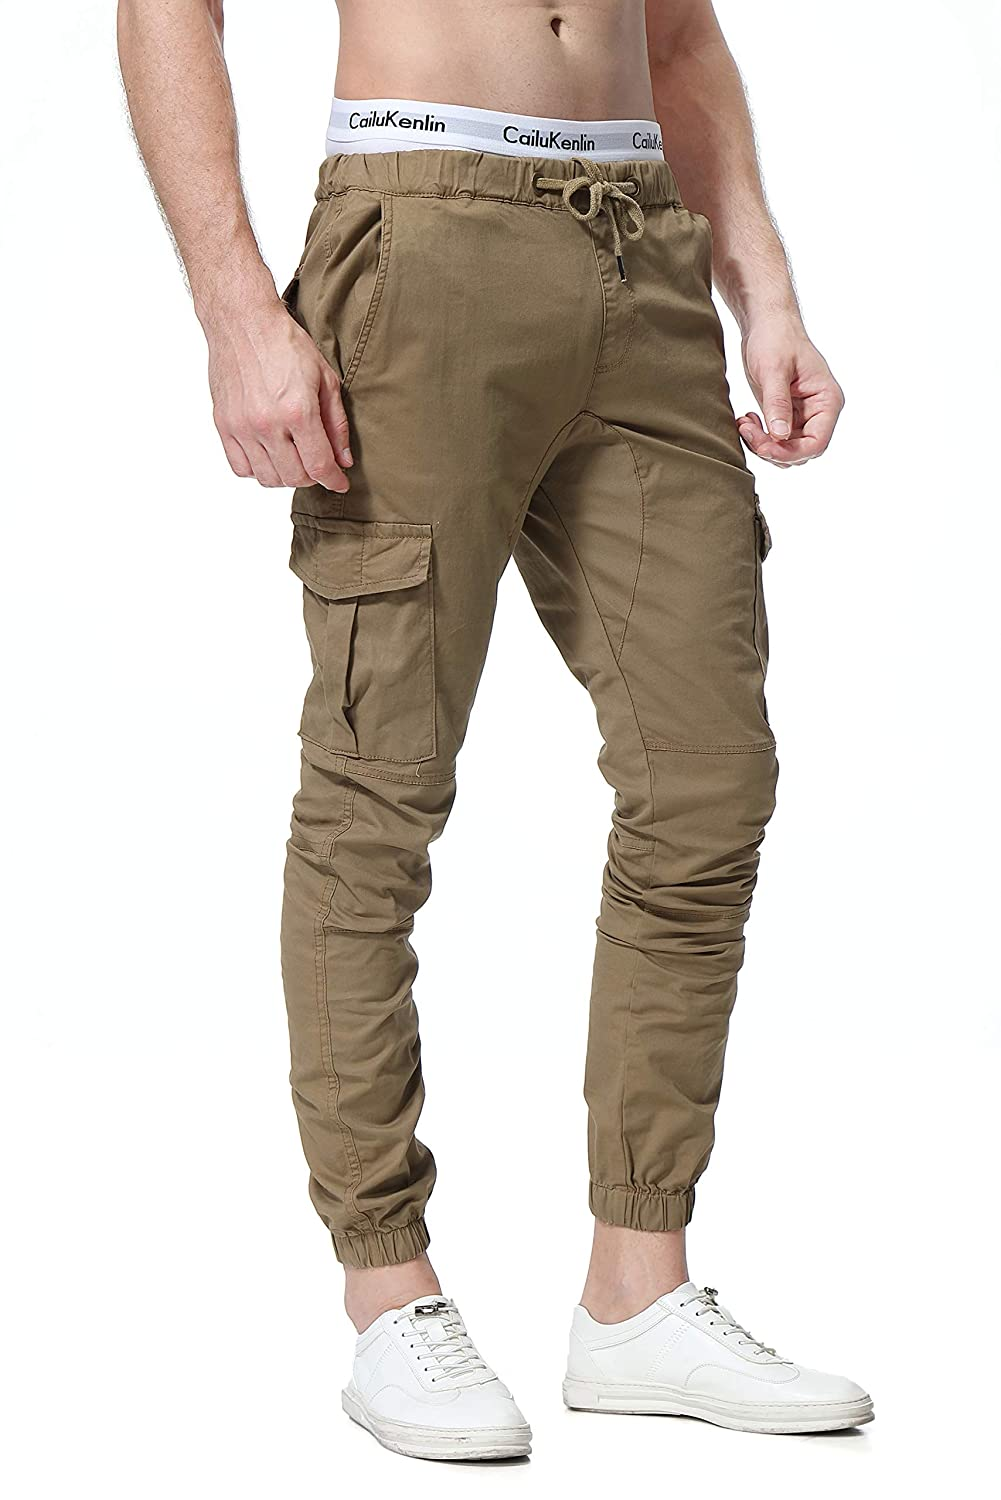 WESIDOM Mens Cargo Pants Jogger Jeans Combat Elasticated Waist Casual Trouser Outdoor Hiking Sweatpants